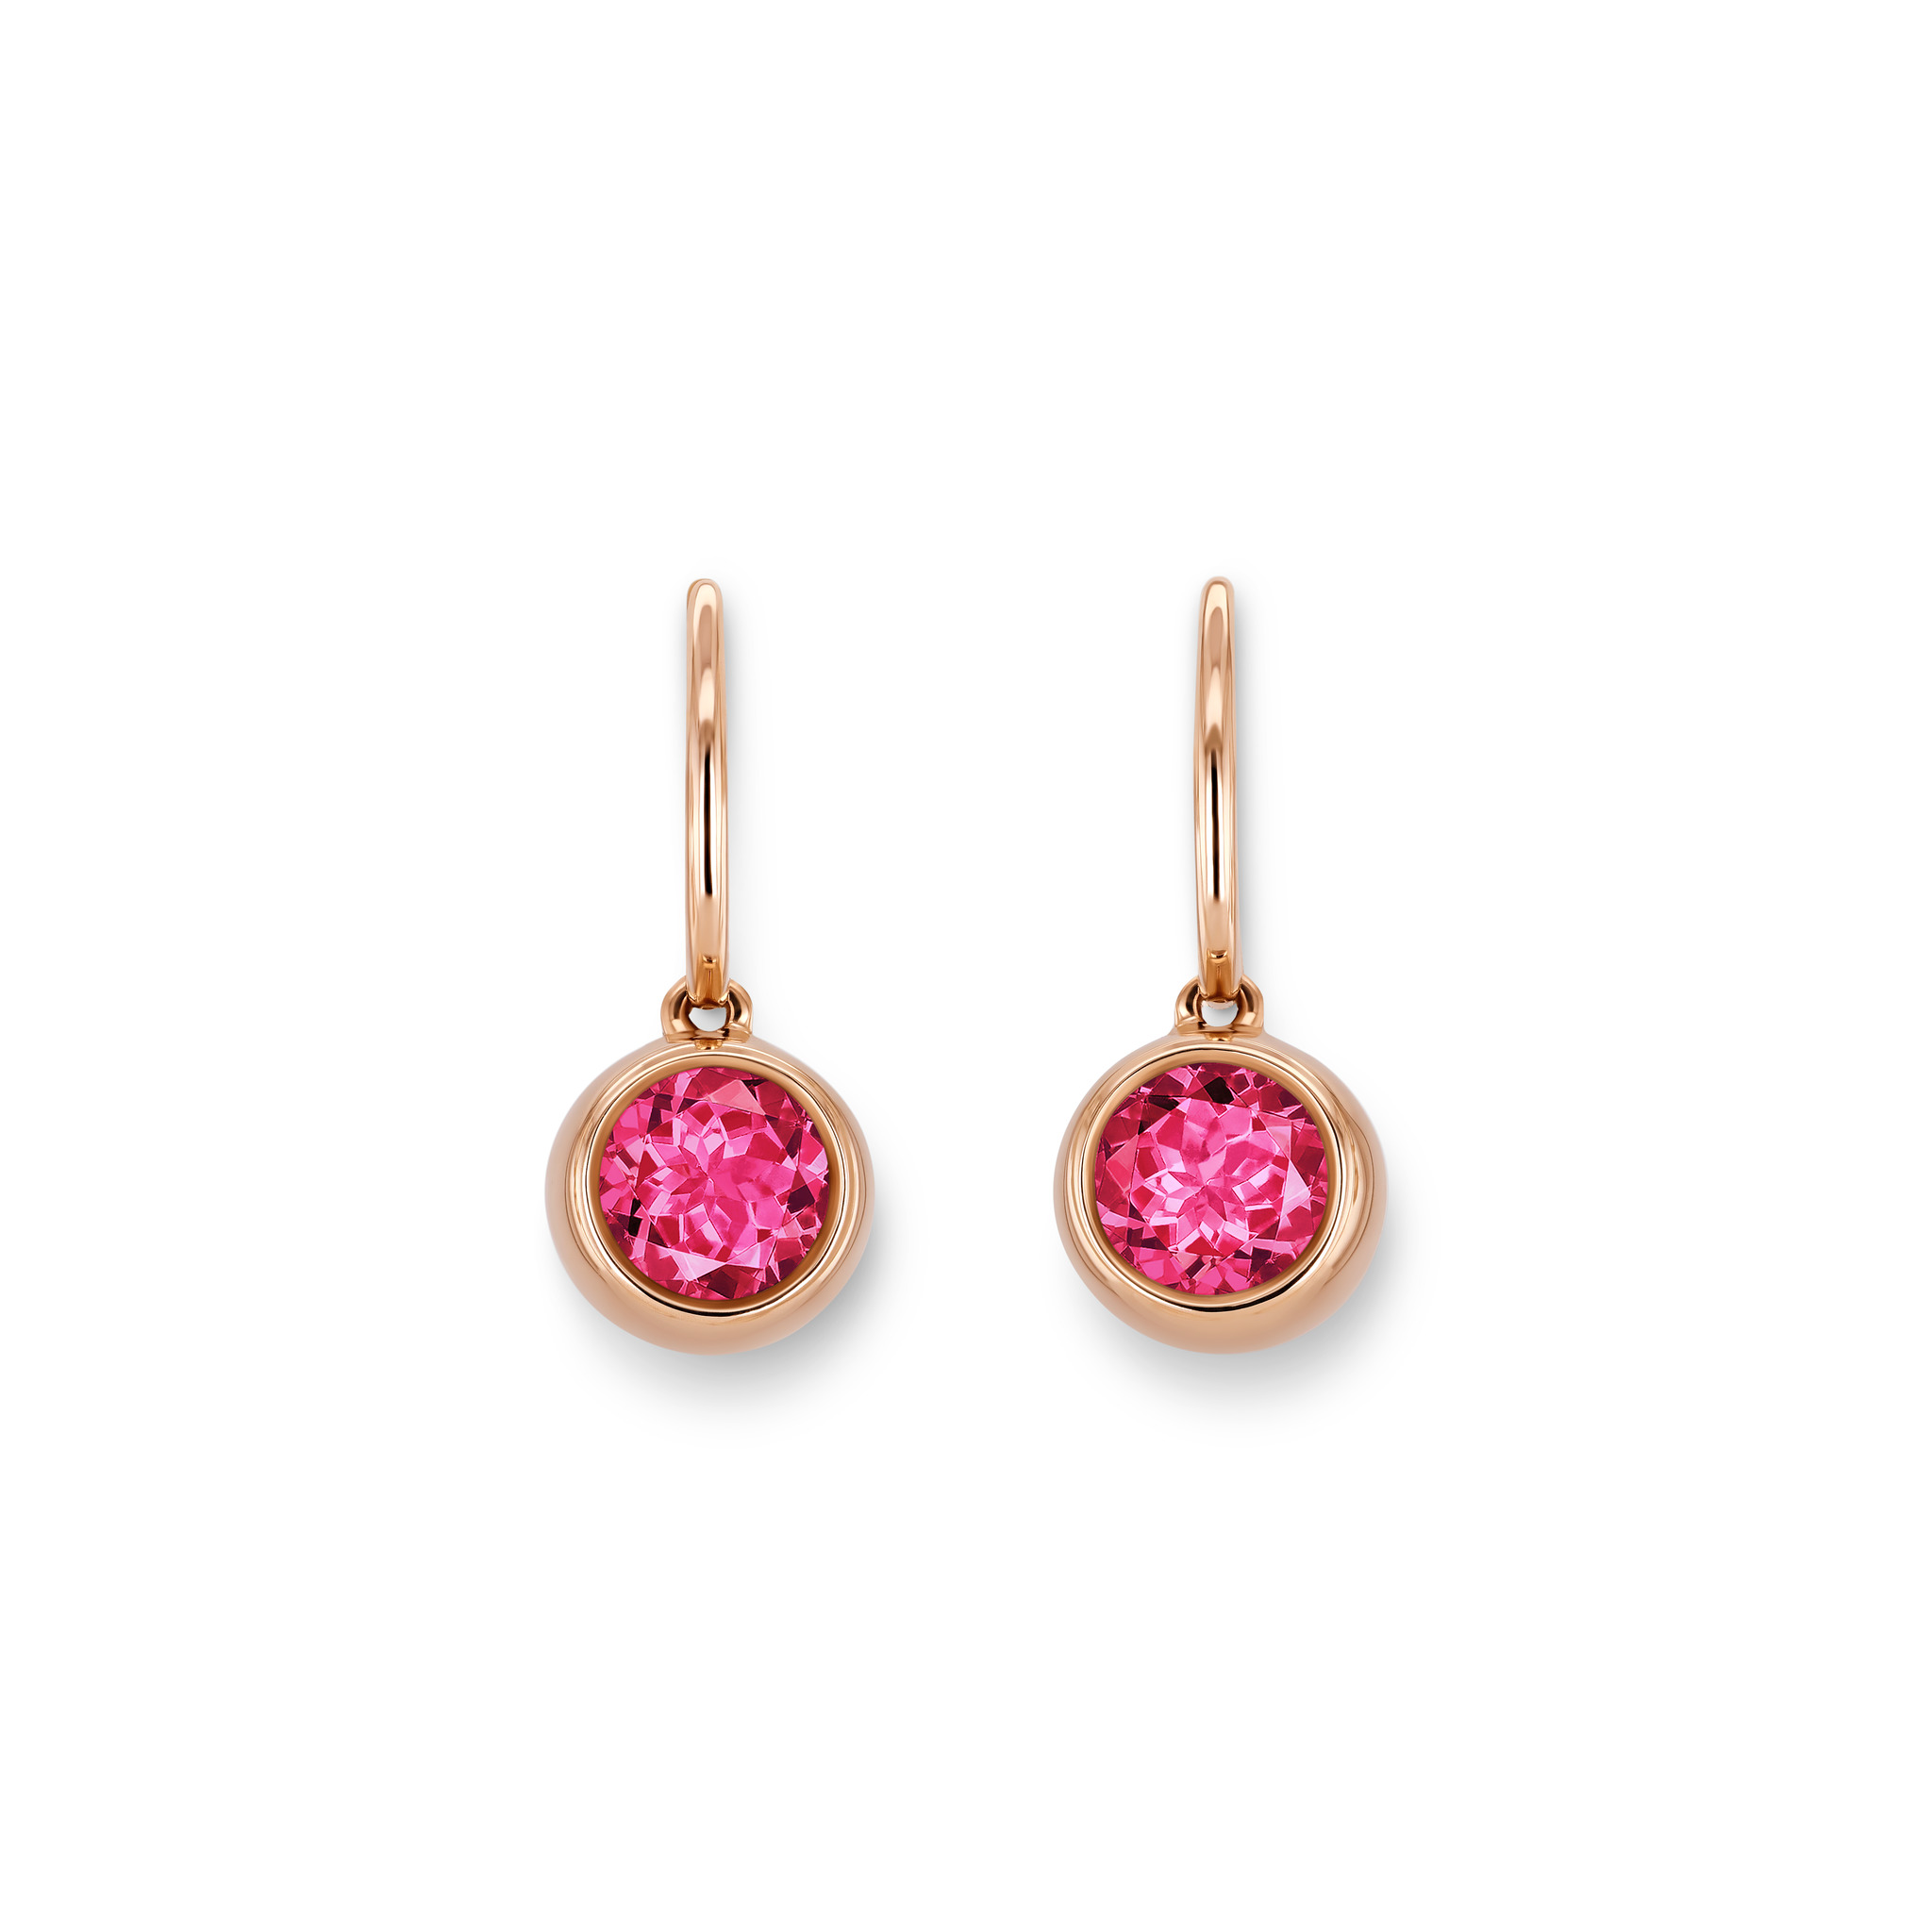 Earrings with tourmalines